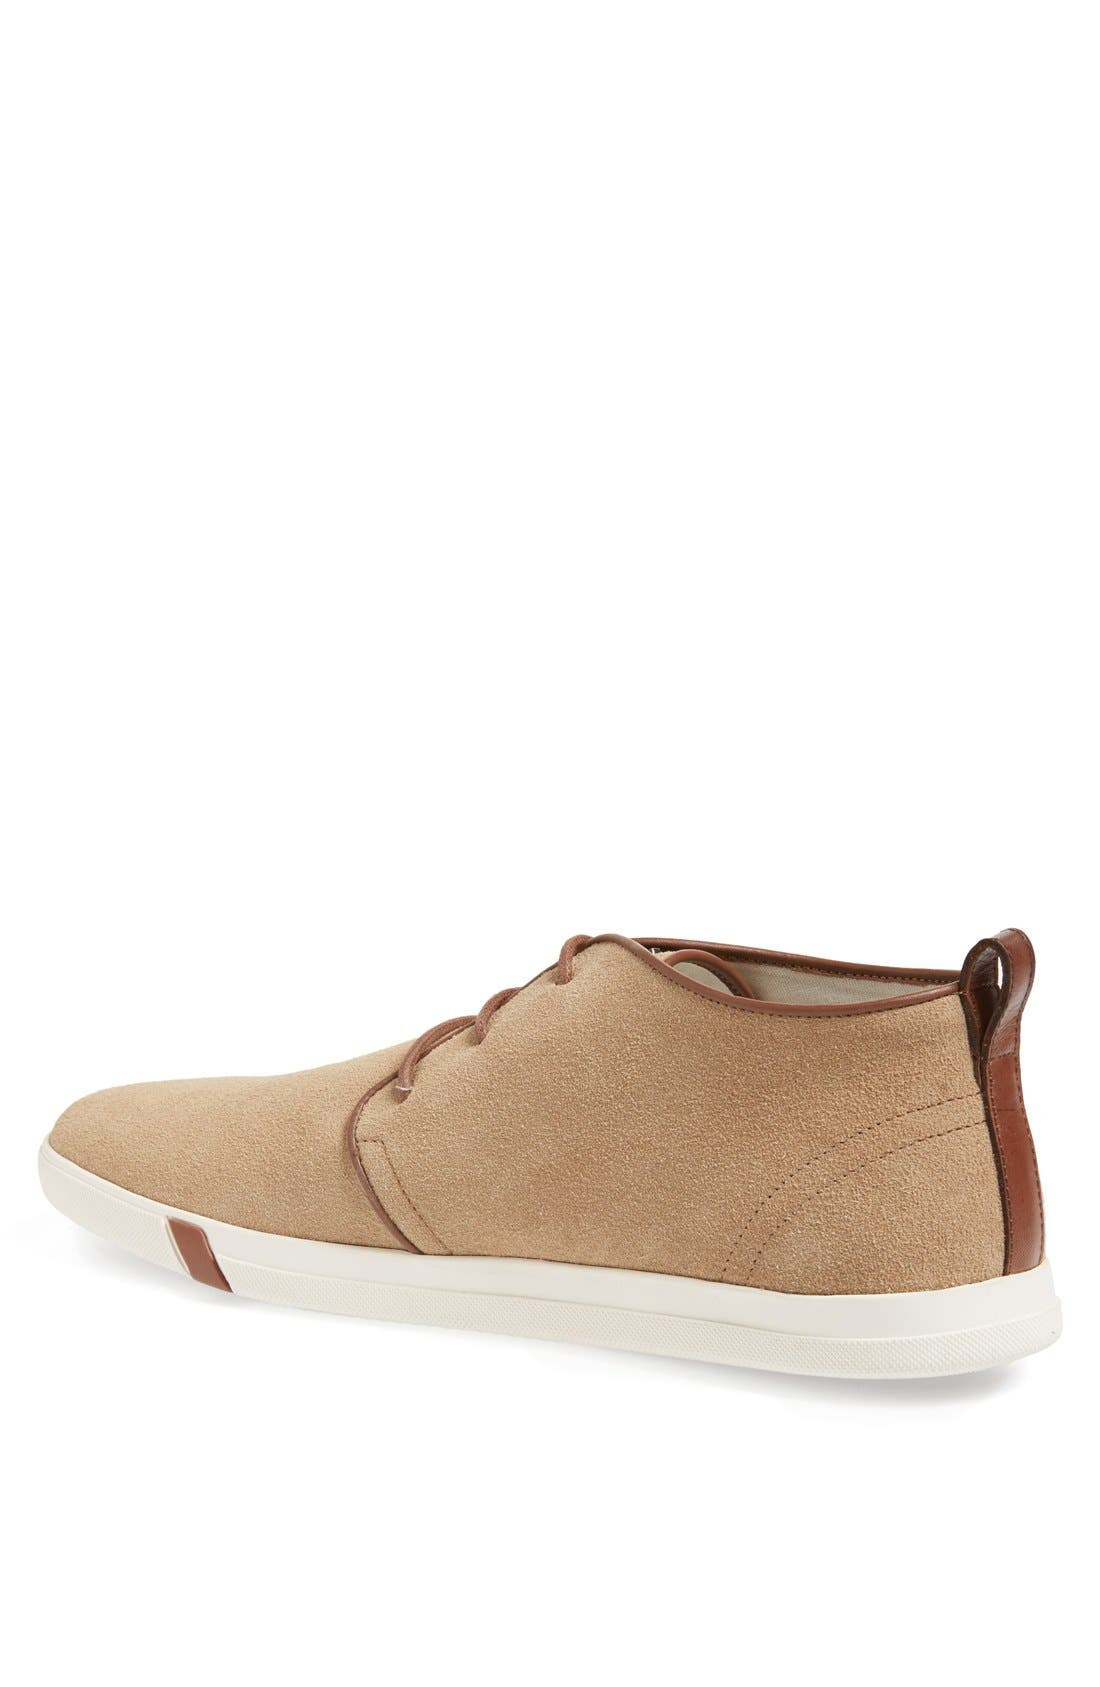 Alternate Image 2  - Armani Jeans Suede Chukka Boot (Men)